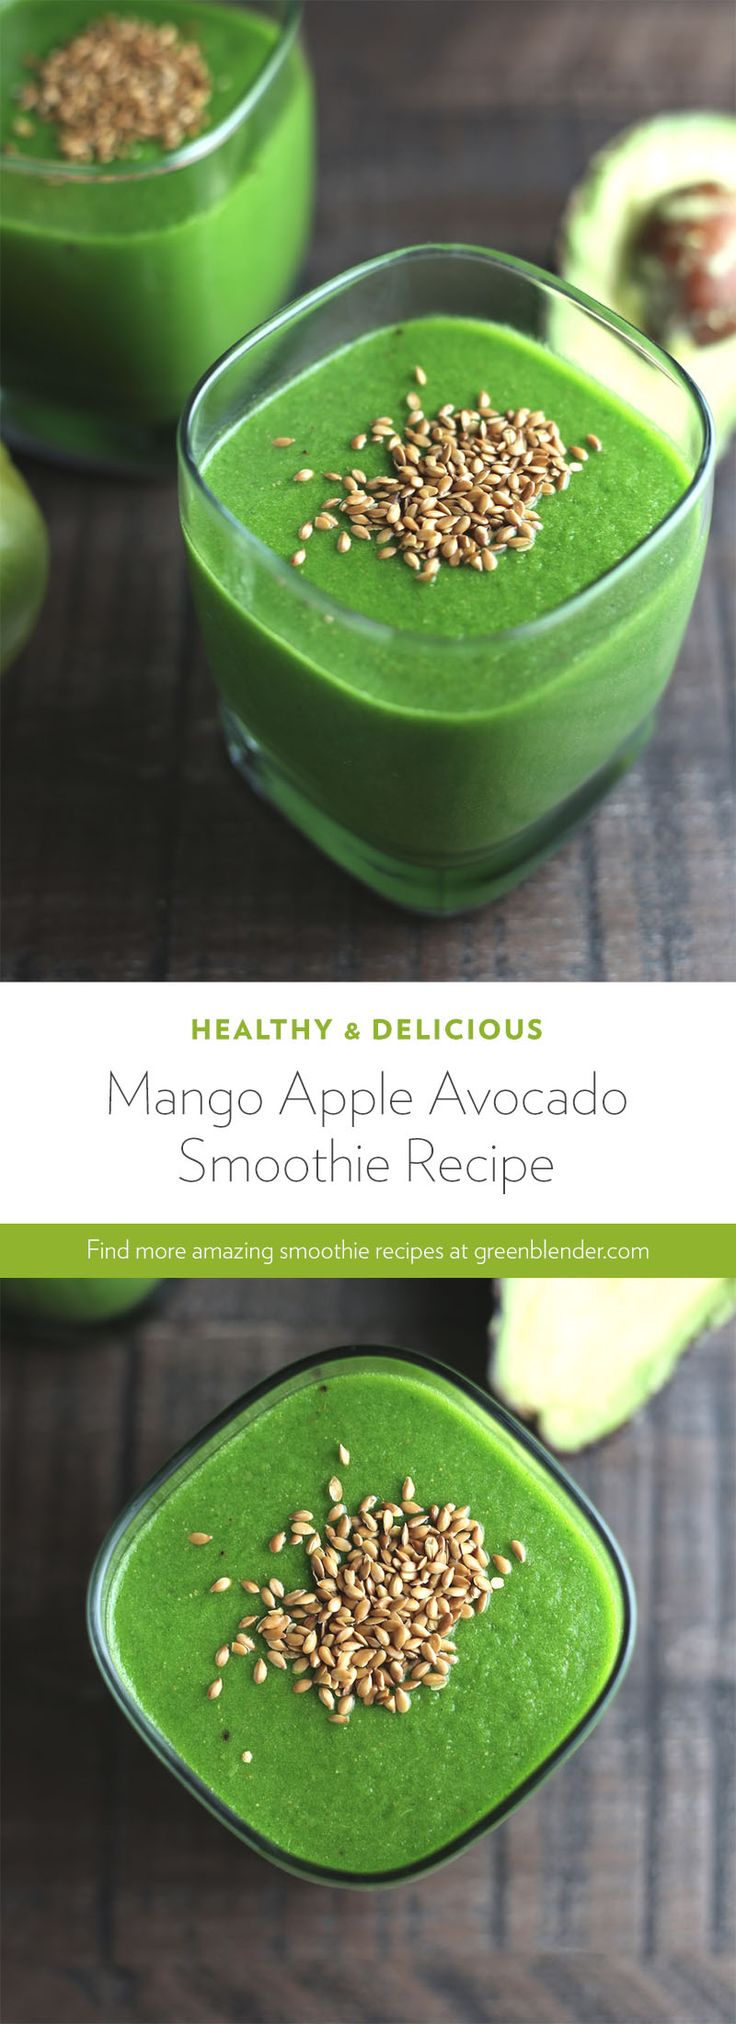 Mangoes are high in beta carotene, as well as vitamin A, which has been connected to improved bone health. Acai berries are low in sugar but high in antioxidants, and may also help with inflammation. Add in half of an avocado (fiber, potassium, and heart-